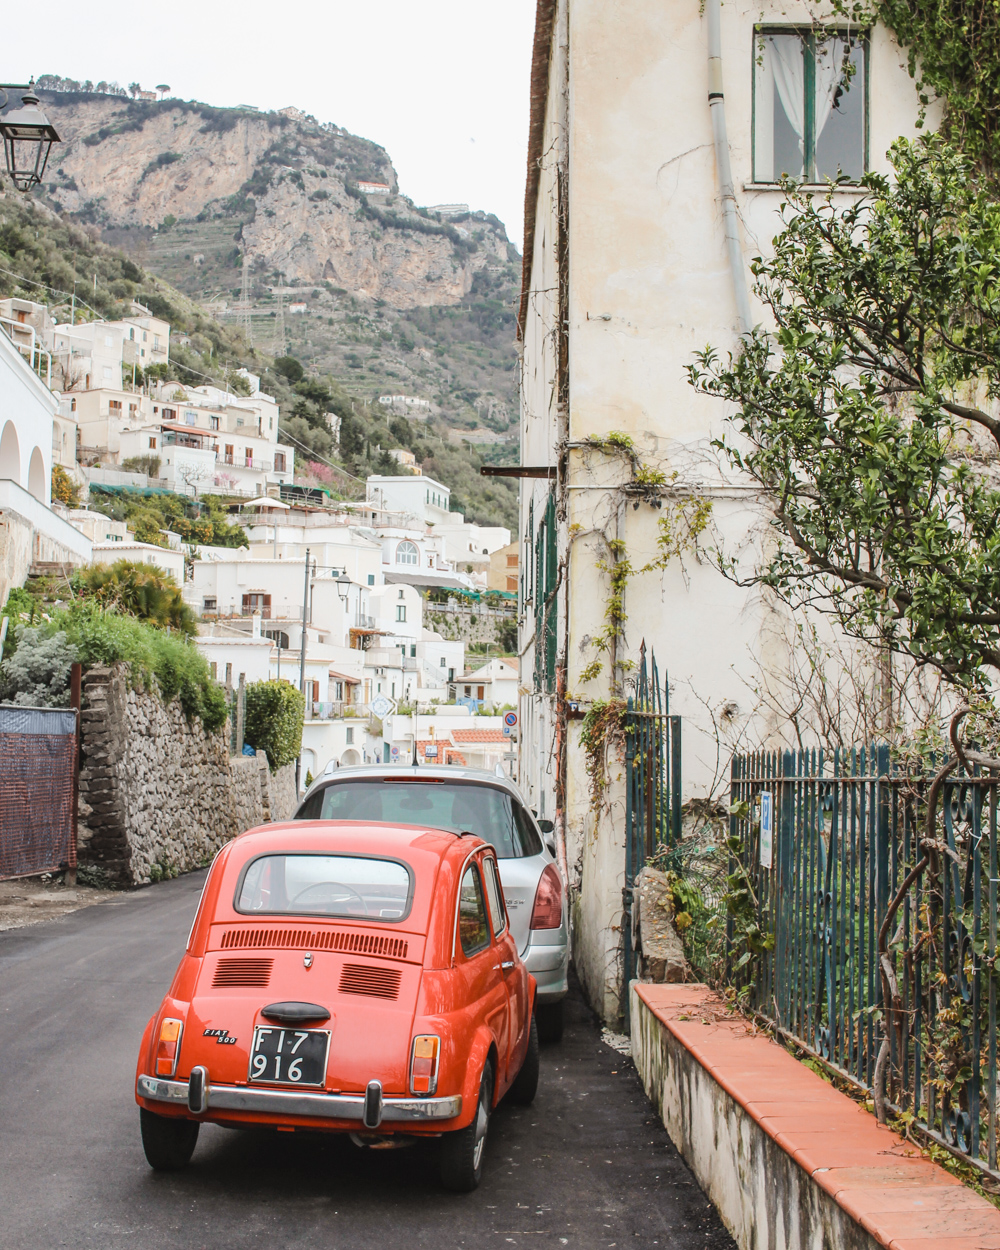 Driving Tips for a Road Trip in Italy